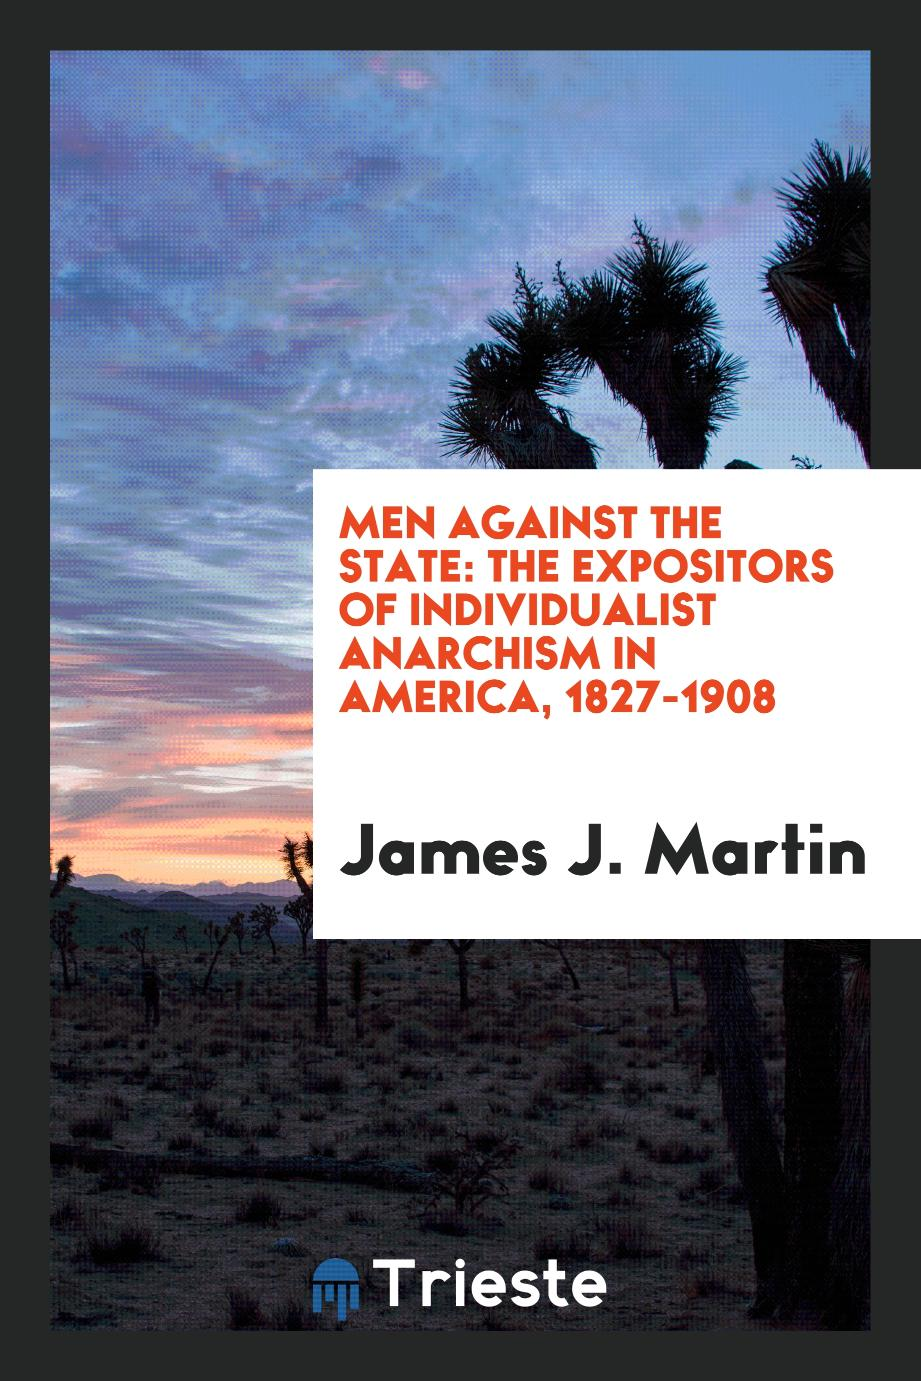 Men Against the State: The Expositors of Individualist Anarchism in America, 1827-1908